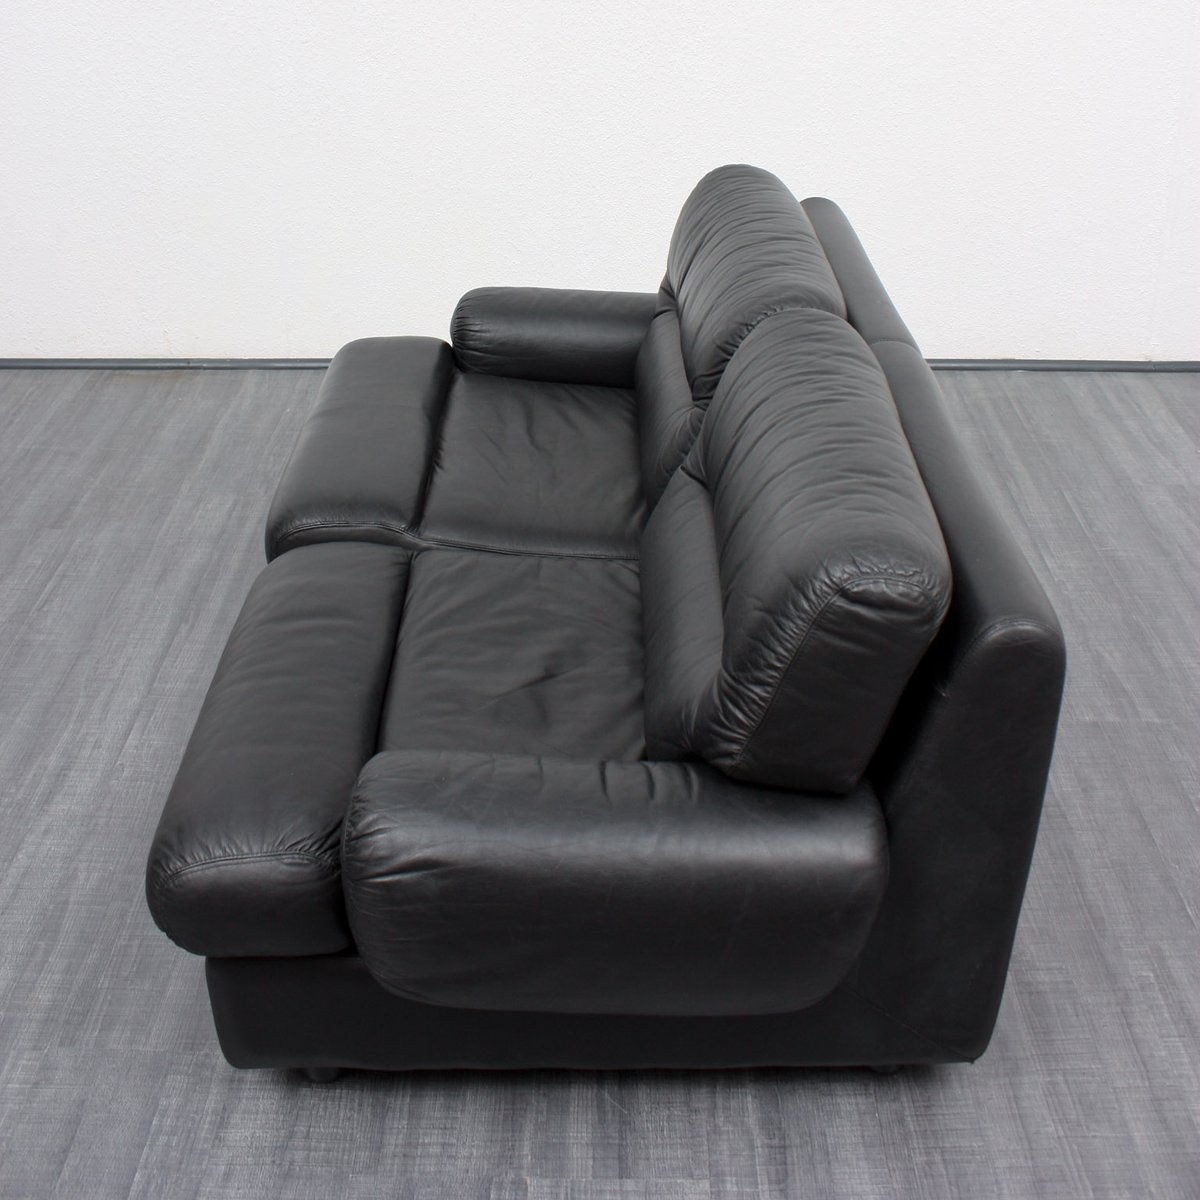 schwarzes vintage 2 sitzer ledersofa 1970er bei pamono kaufen. Black Bedroom Furniture Sets. Home Design Ideas